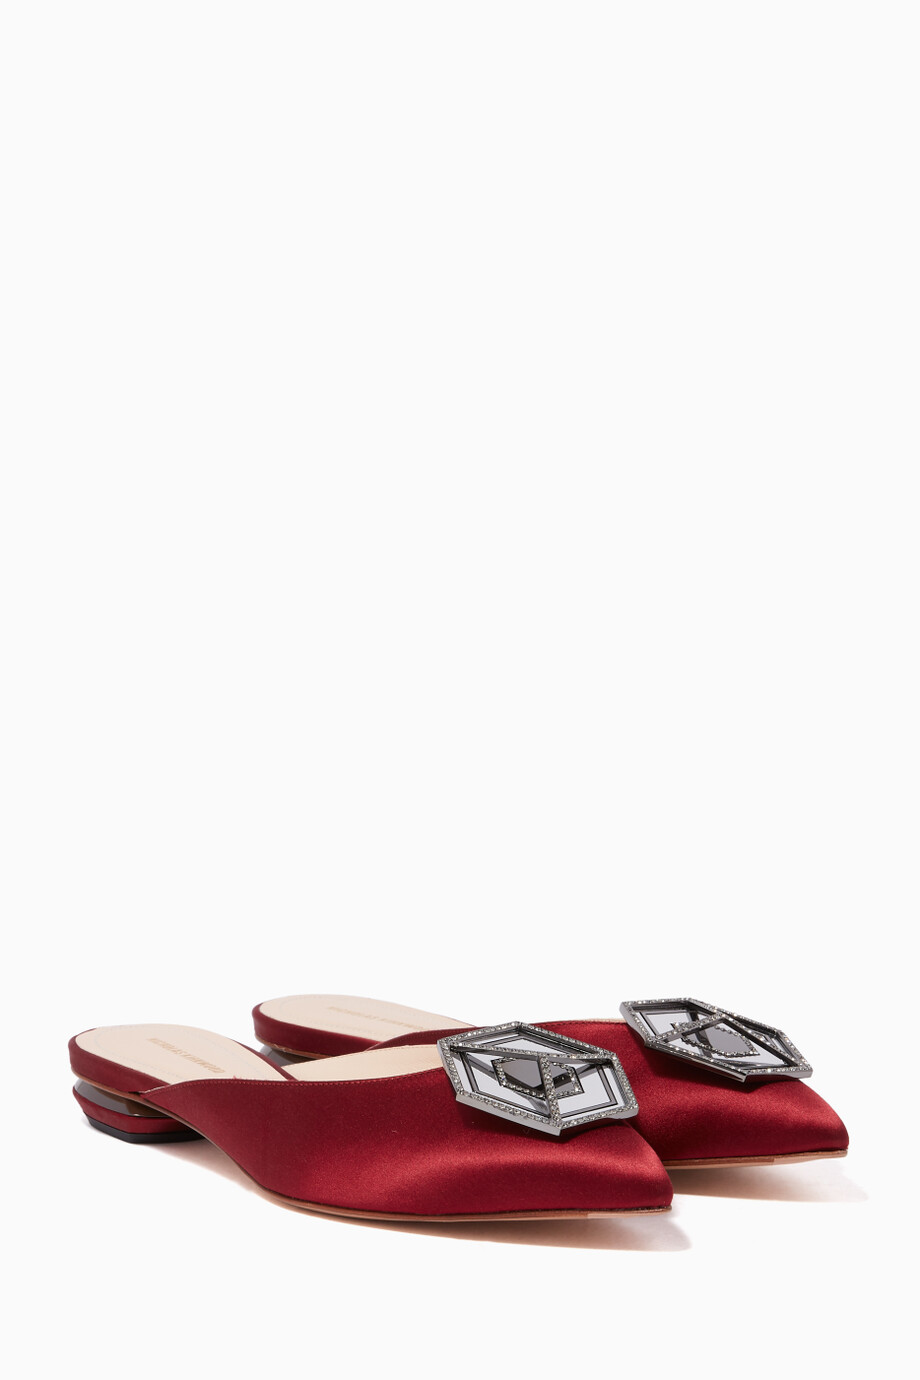 a4191aa50 Shop Nicholas Kirkwood Red Dark Red Eden Jewel Satin Slippers for ...